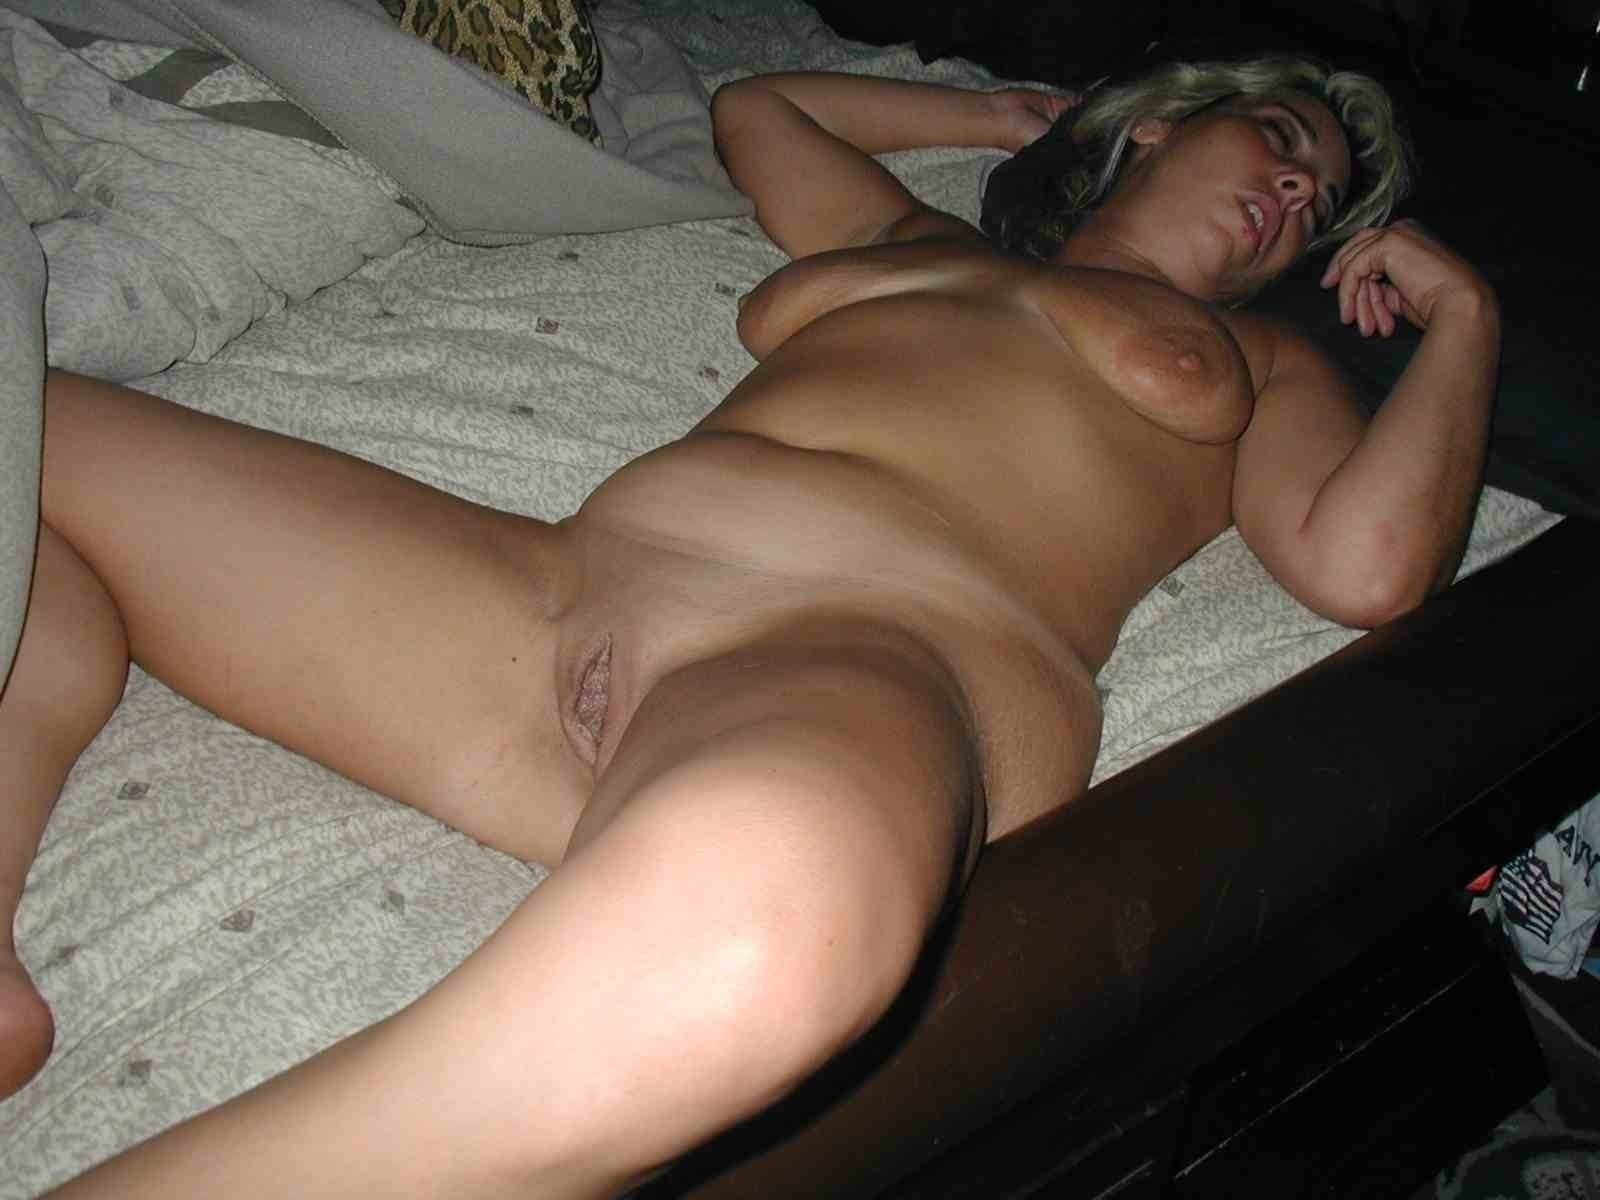 Passed out sex woman